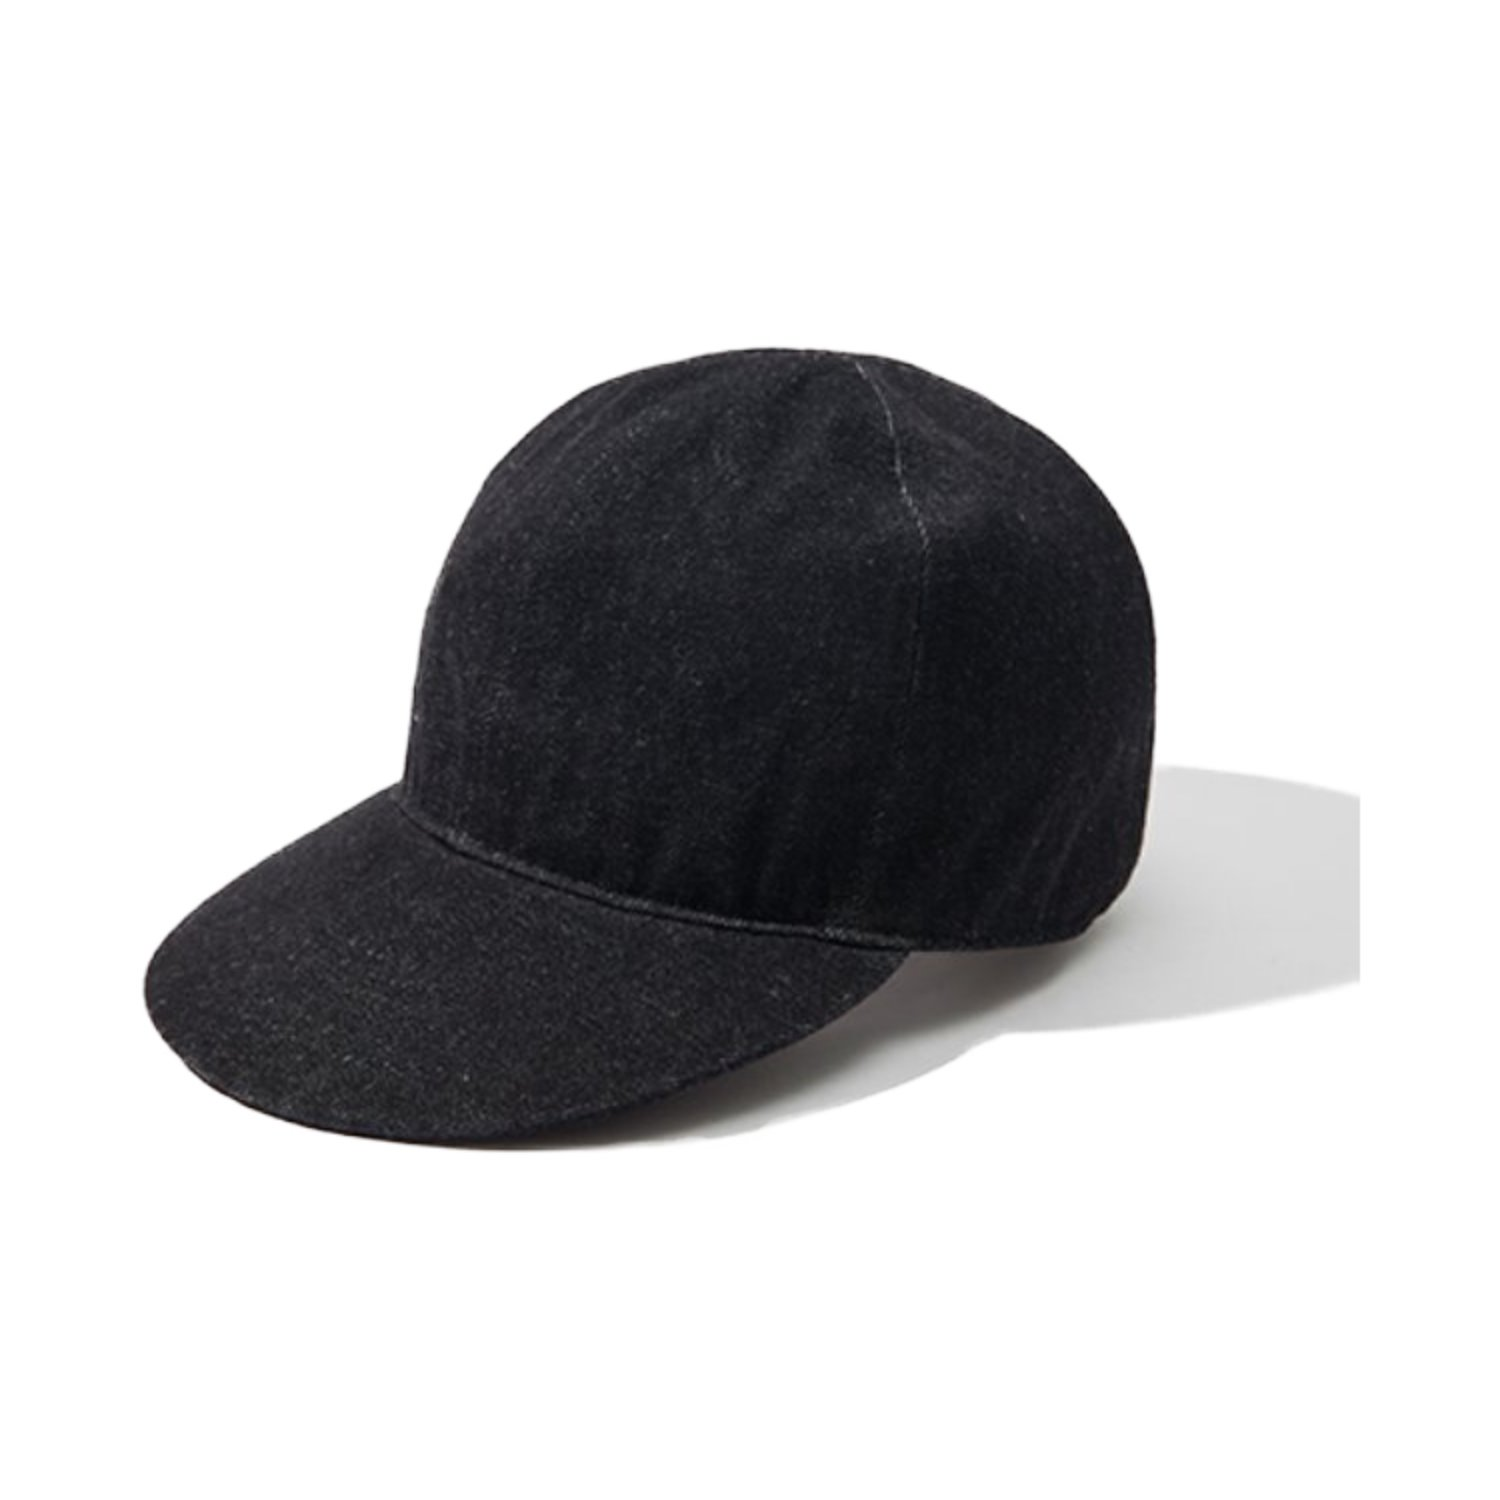 A-3 MECHANIC CAP (Black Denim)